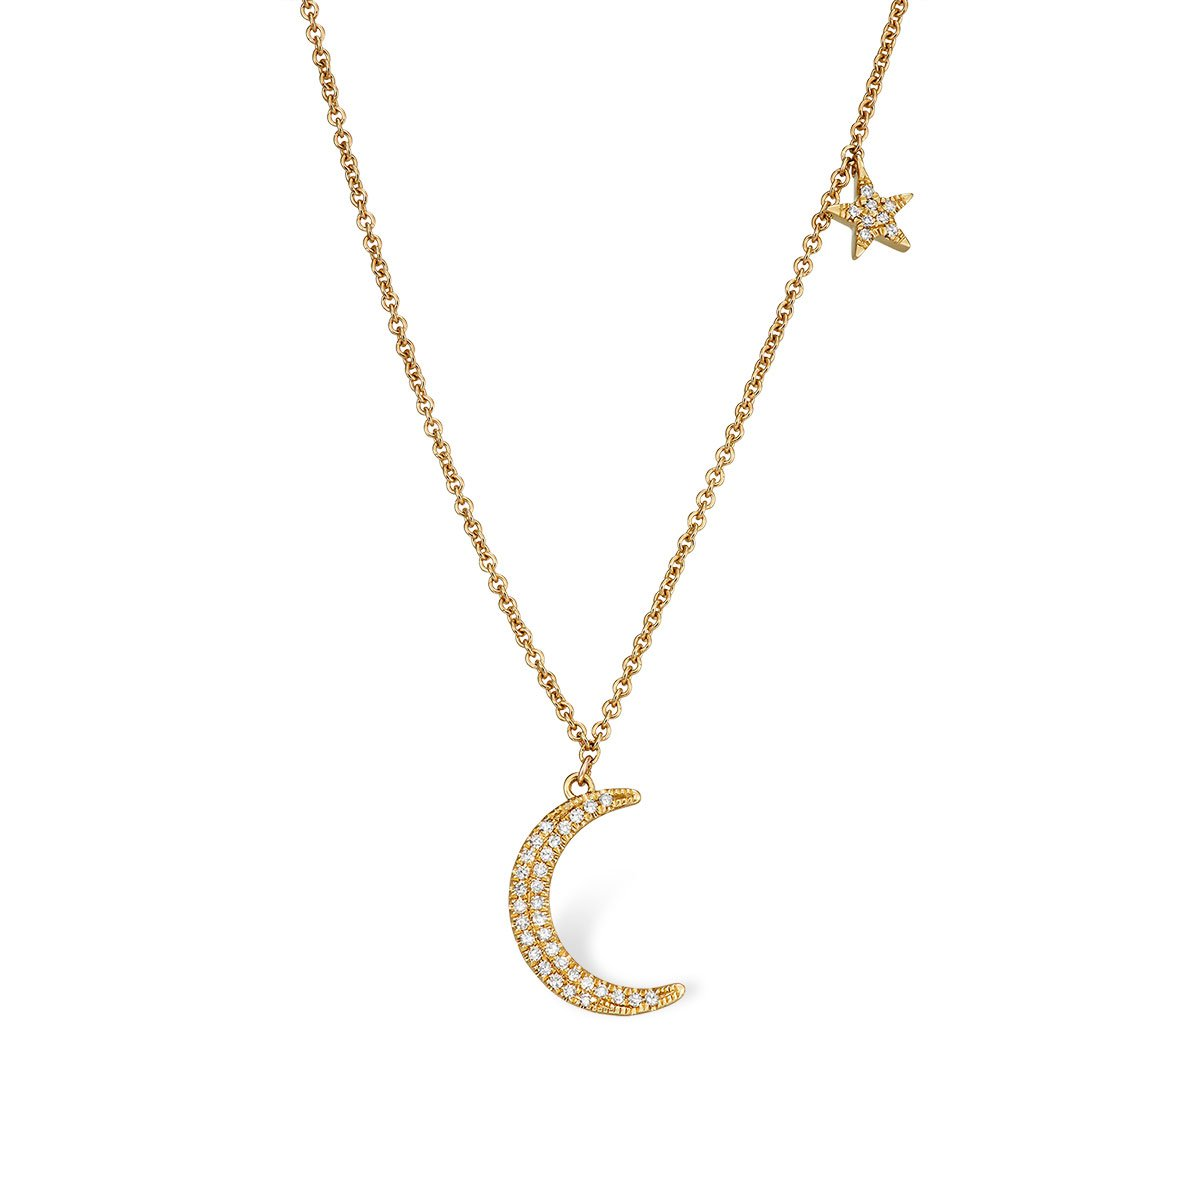 Crescent Moon Necklace - Serena Williams Jewelry